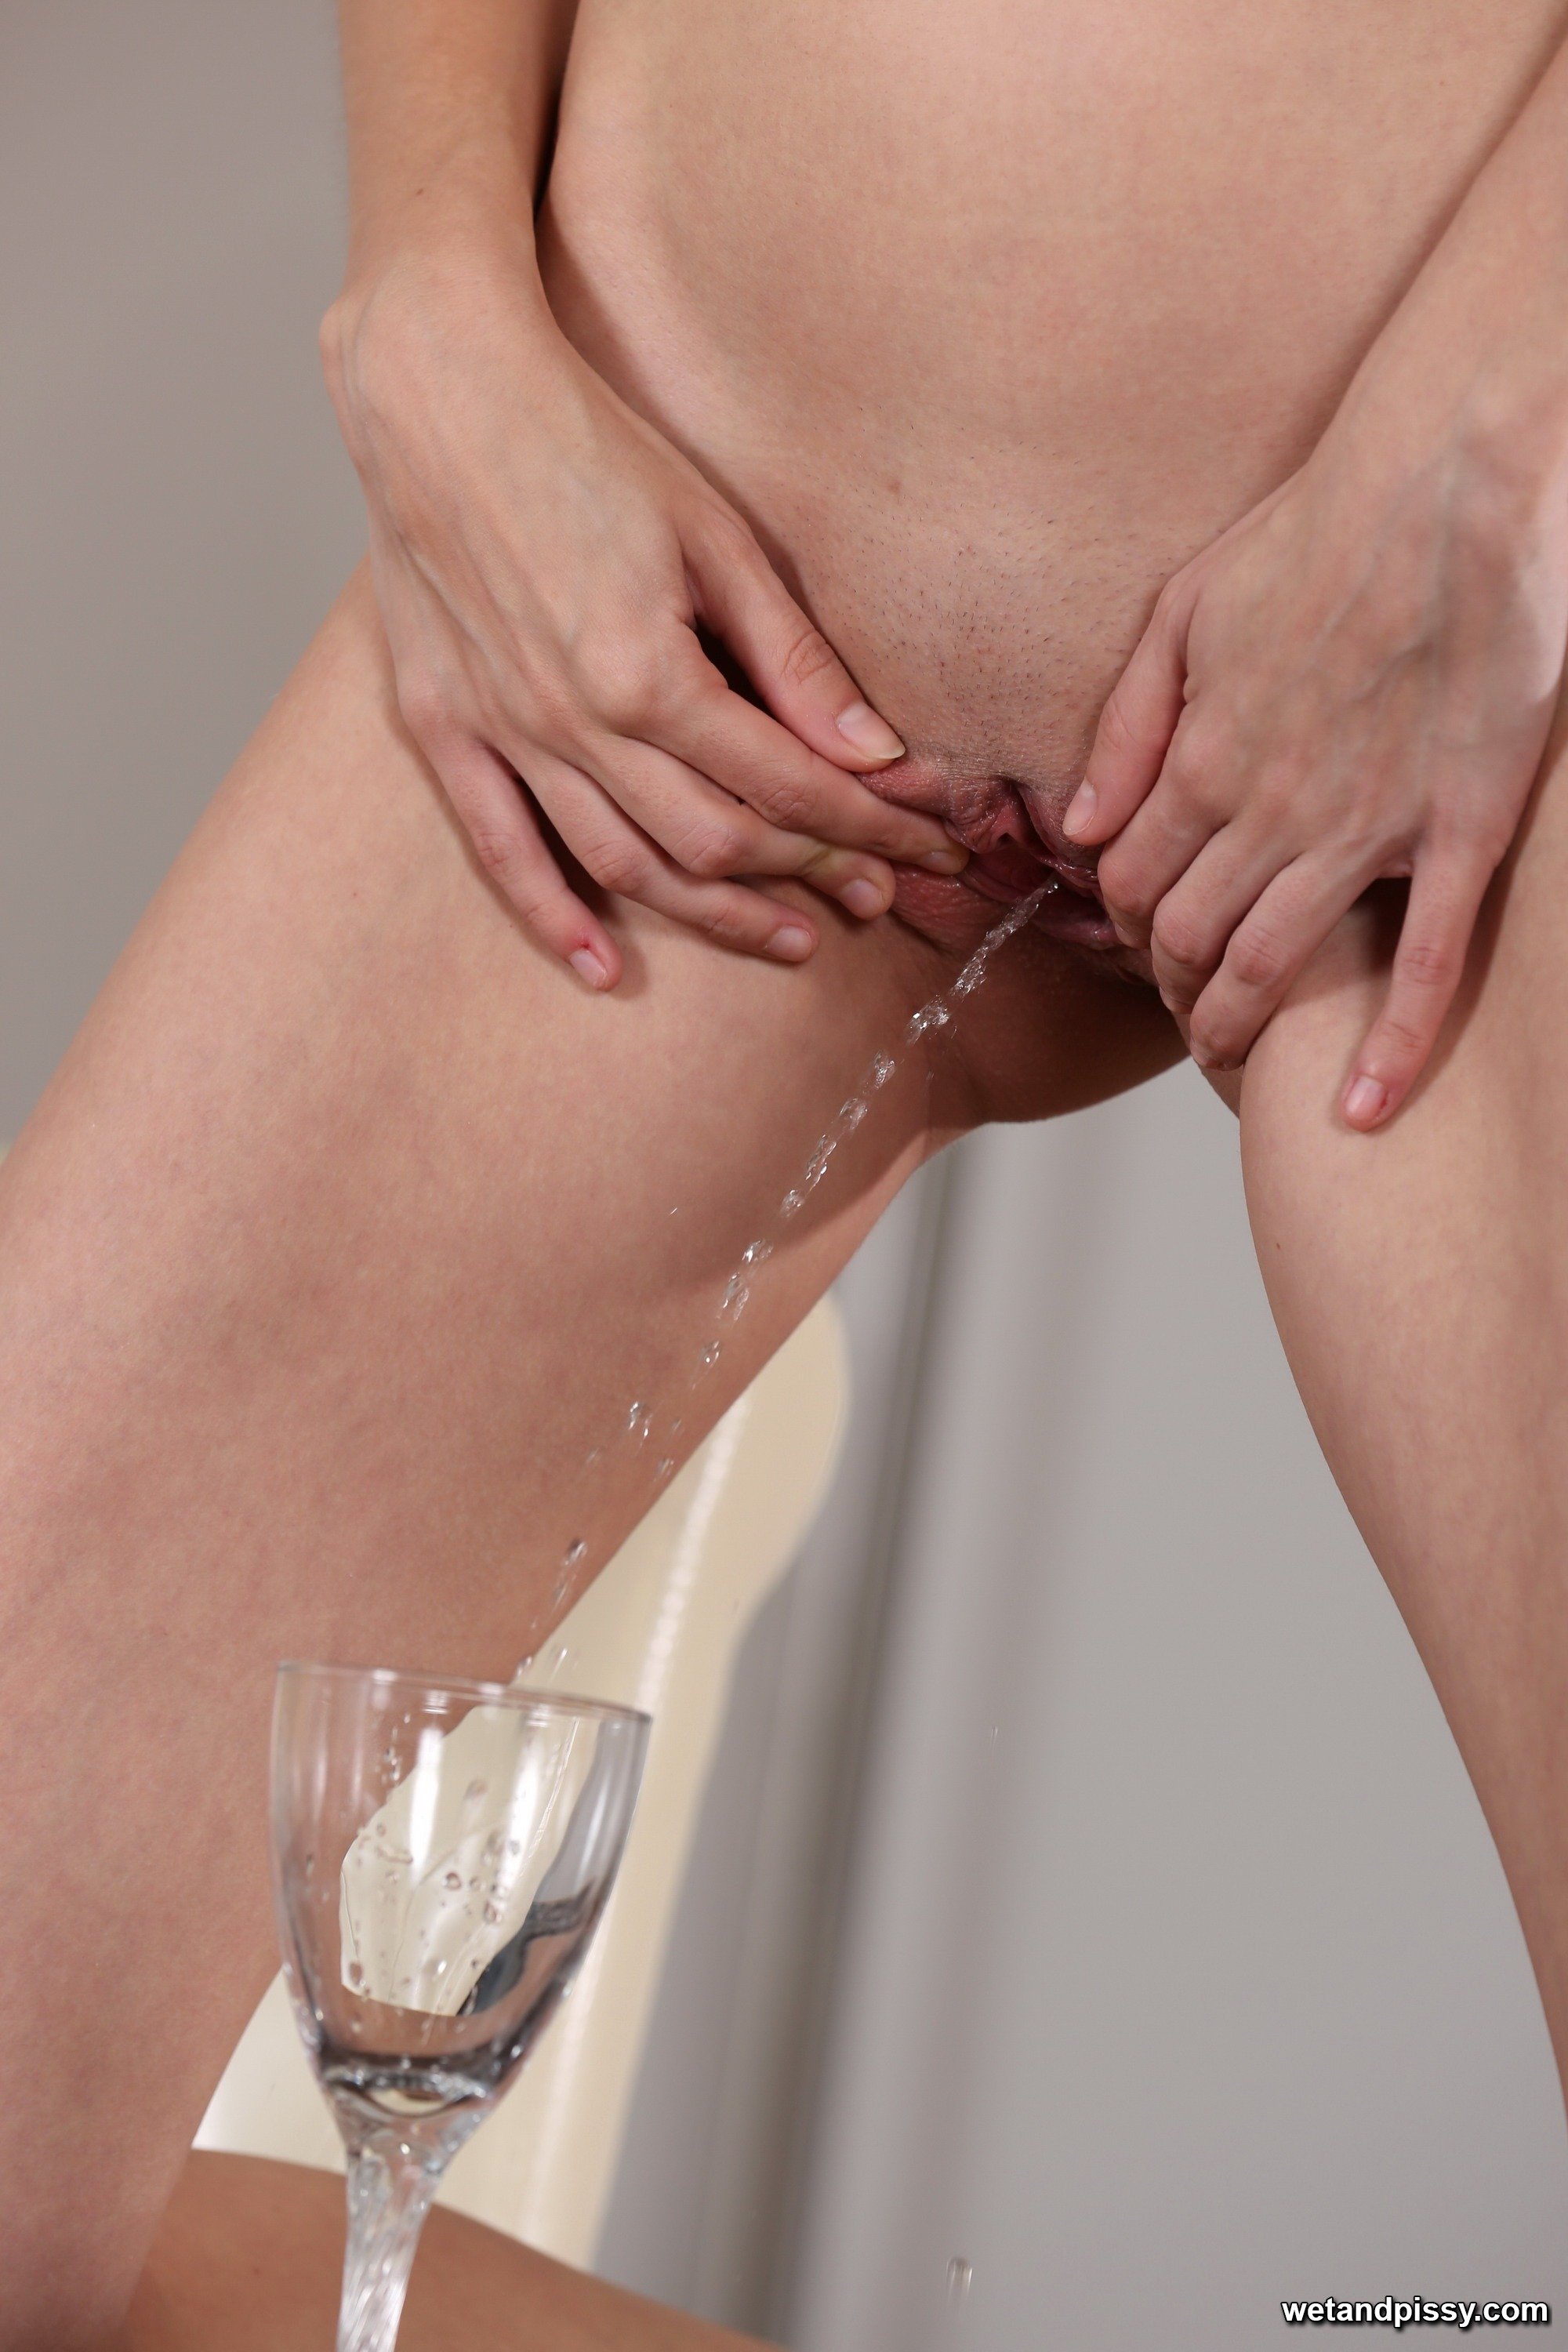 Ria toys her ass during piss play scene